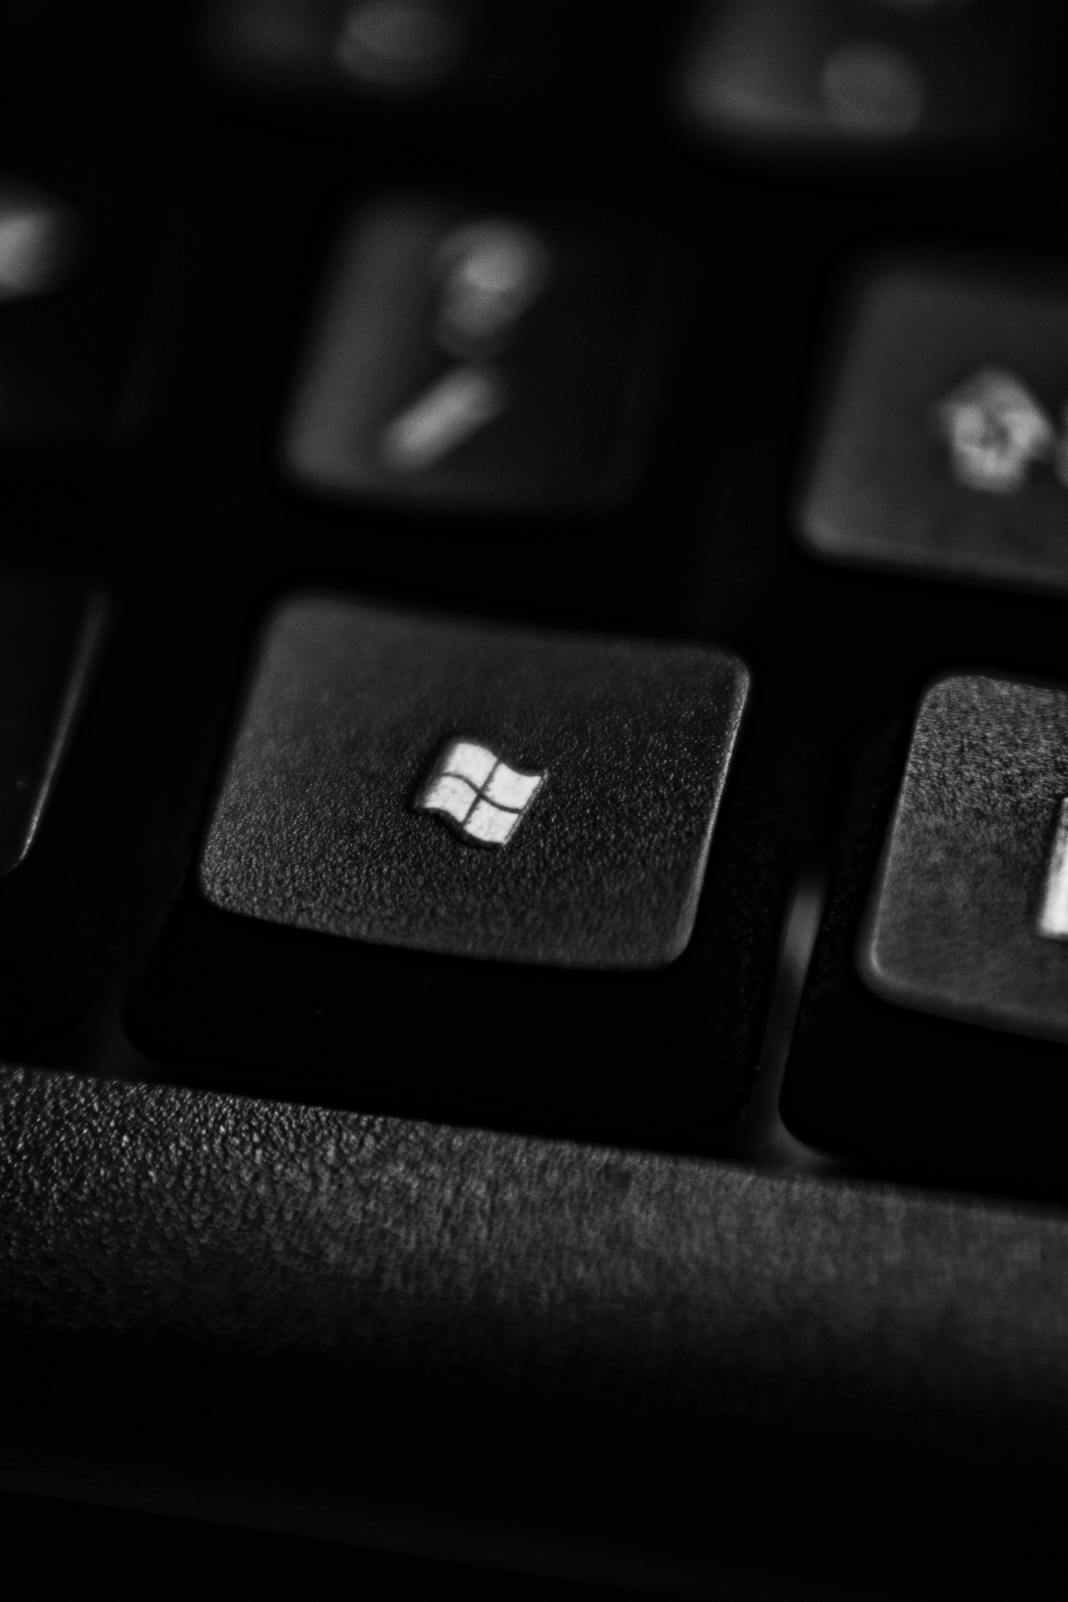 Microsoft has launched a service for the mining industry in South Africa